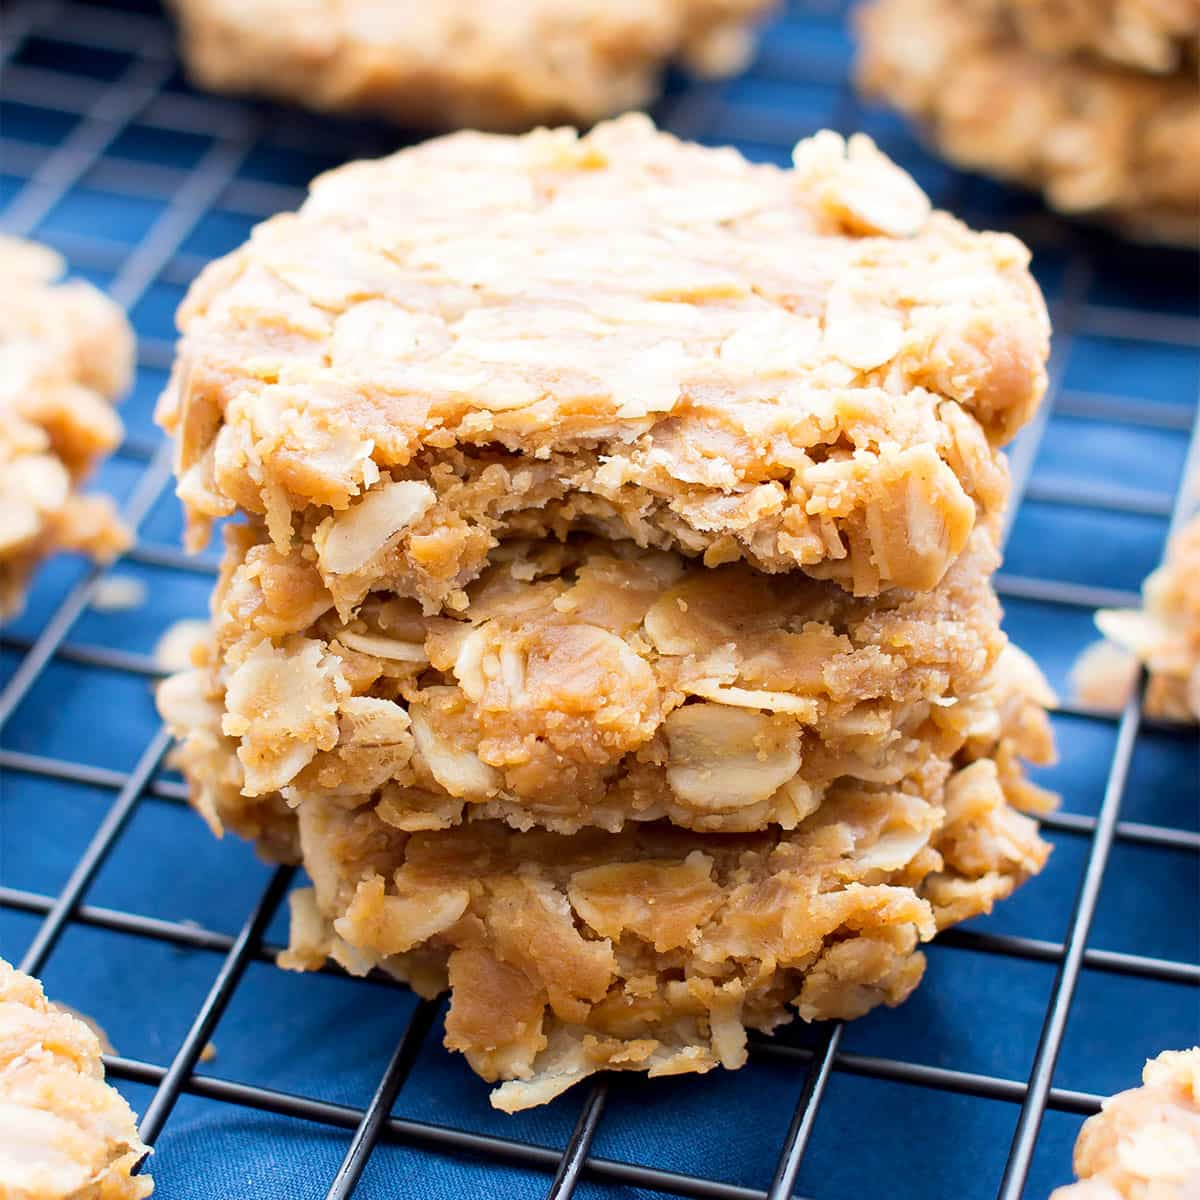 3 Ingredient No Bake Peanut Butter Oatmeal Cookies (V, GF, DF): an easy recipe for deliciously soft and chewy peanut butter cookies bursting with oats. #Vegan #GlutenFree #DairyFree | BeamingBaker.com